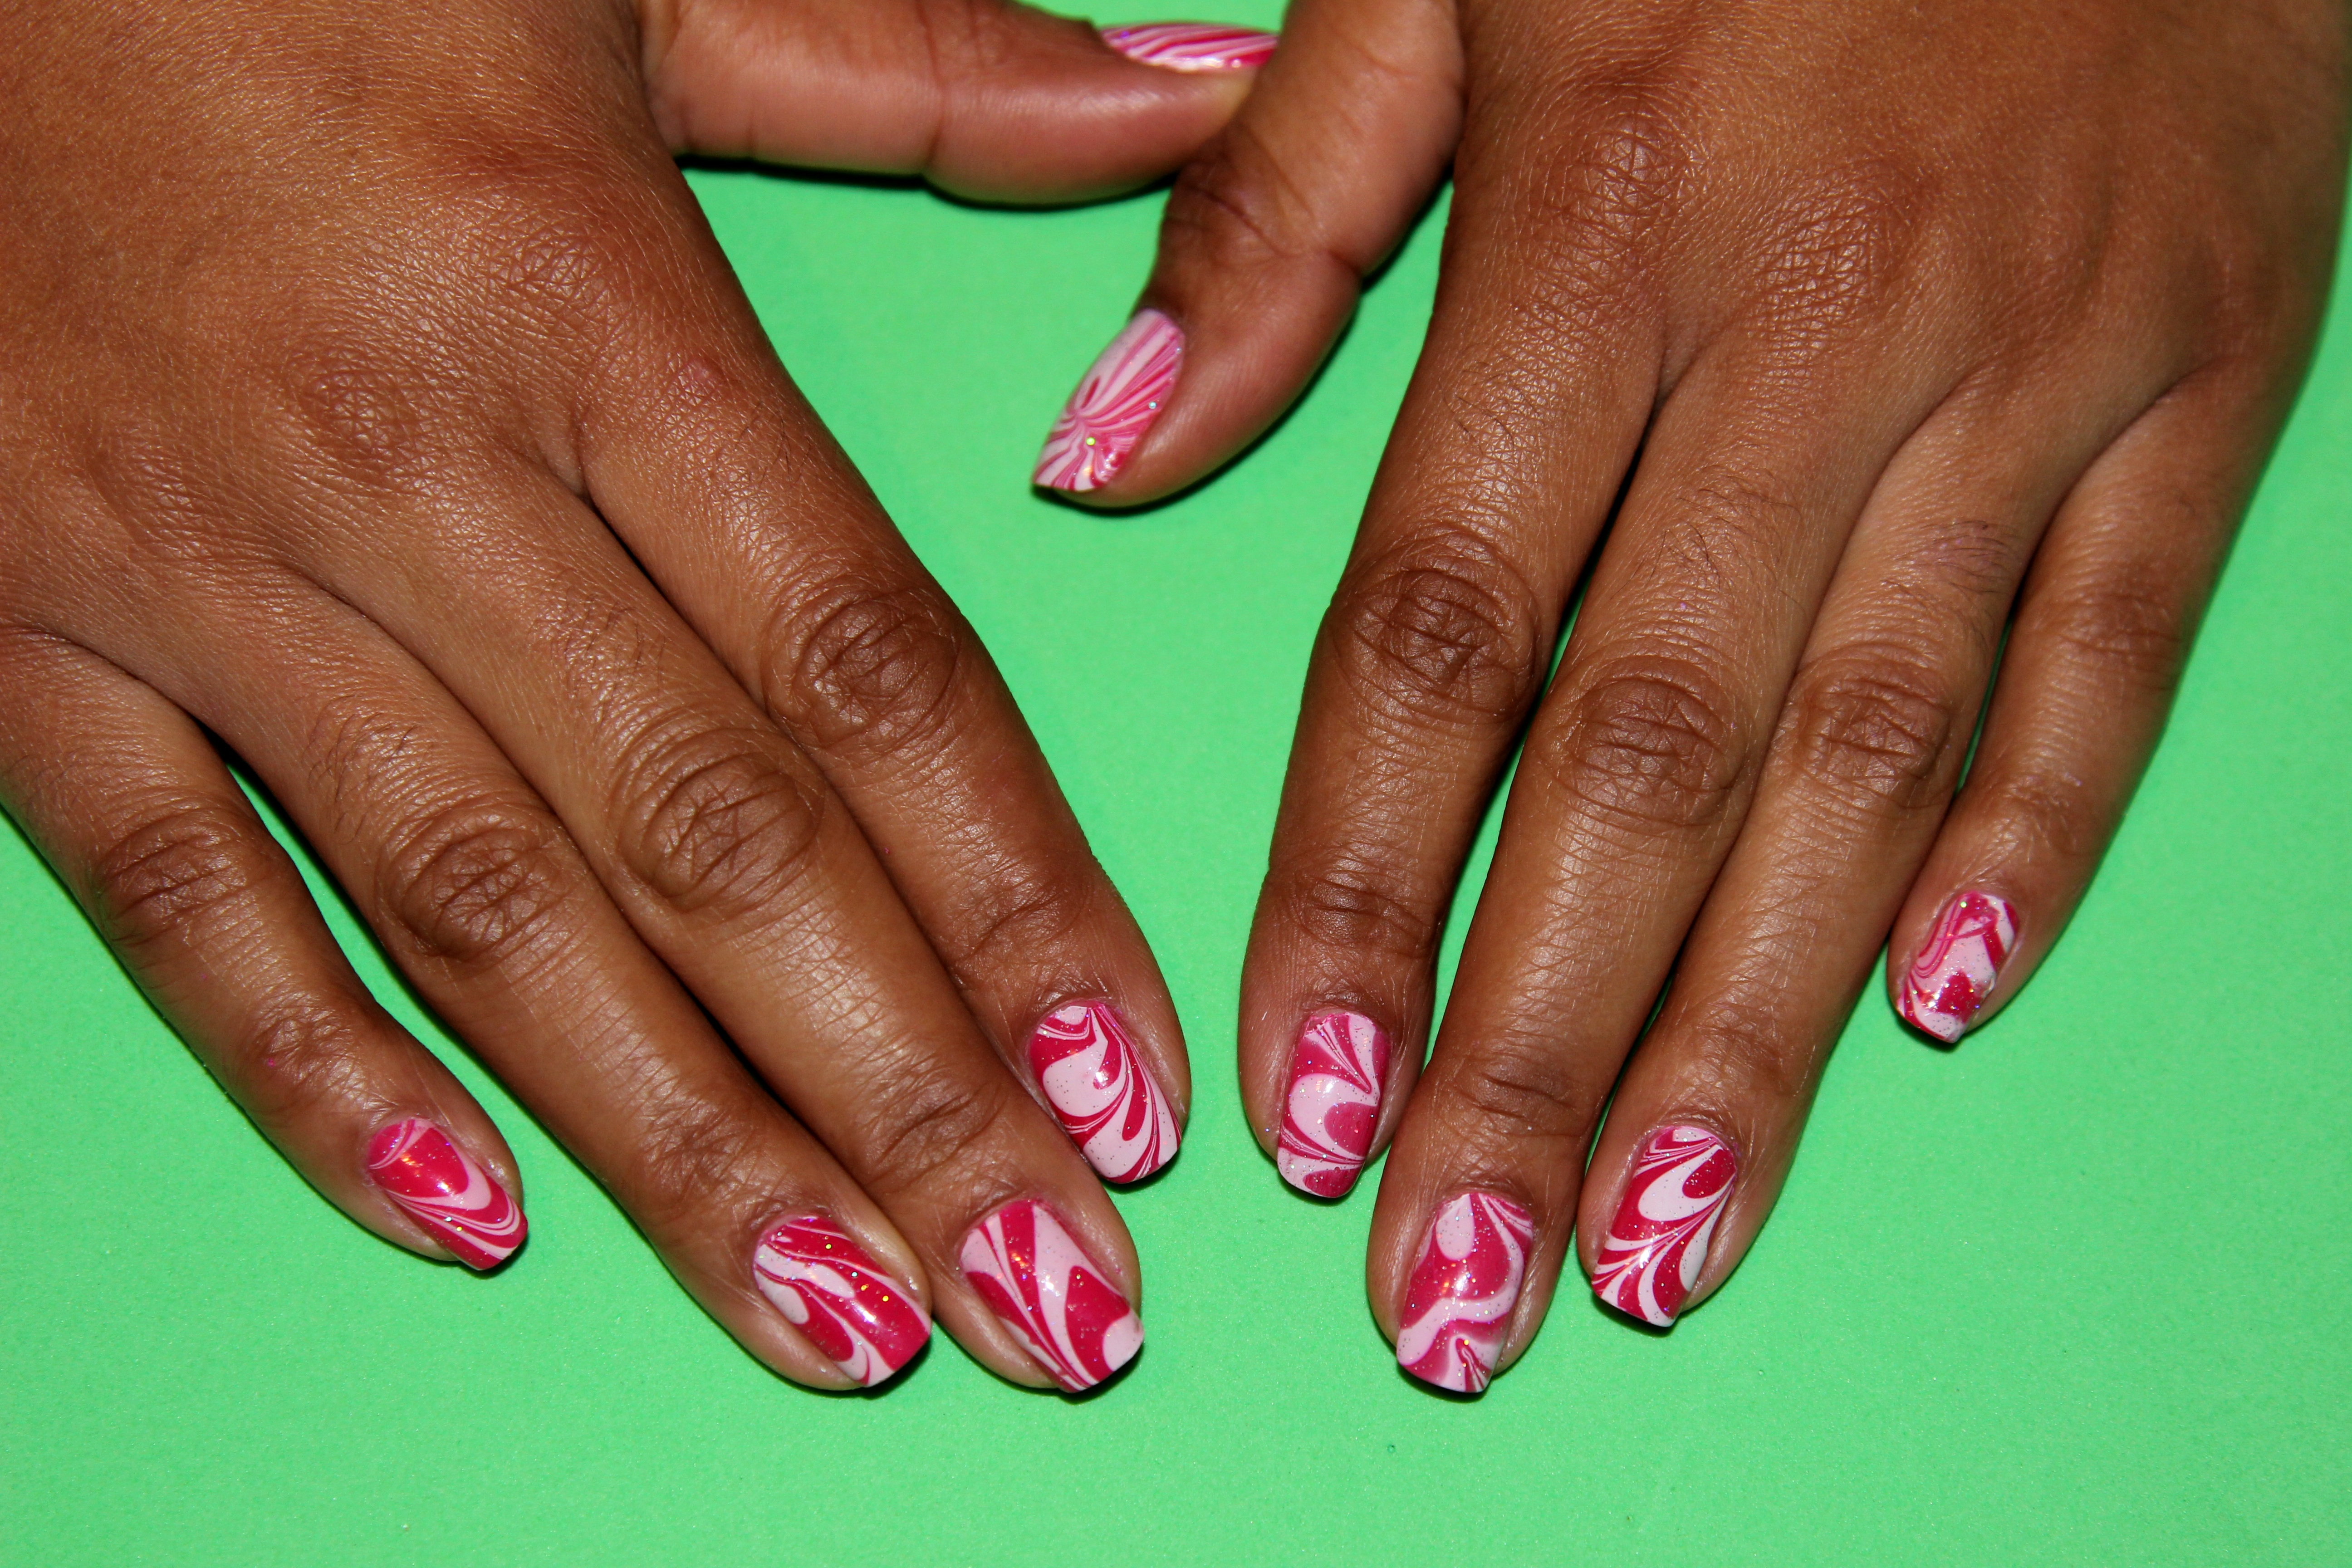 OK Nails - Nail salon in South Bend, IN 46614